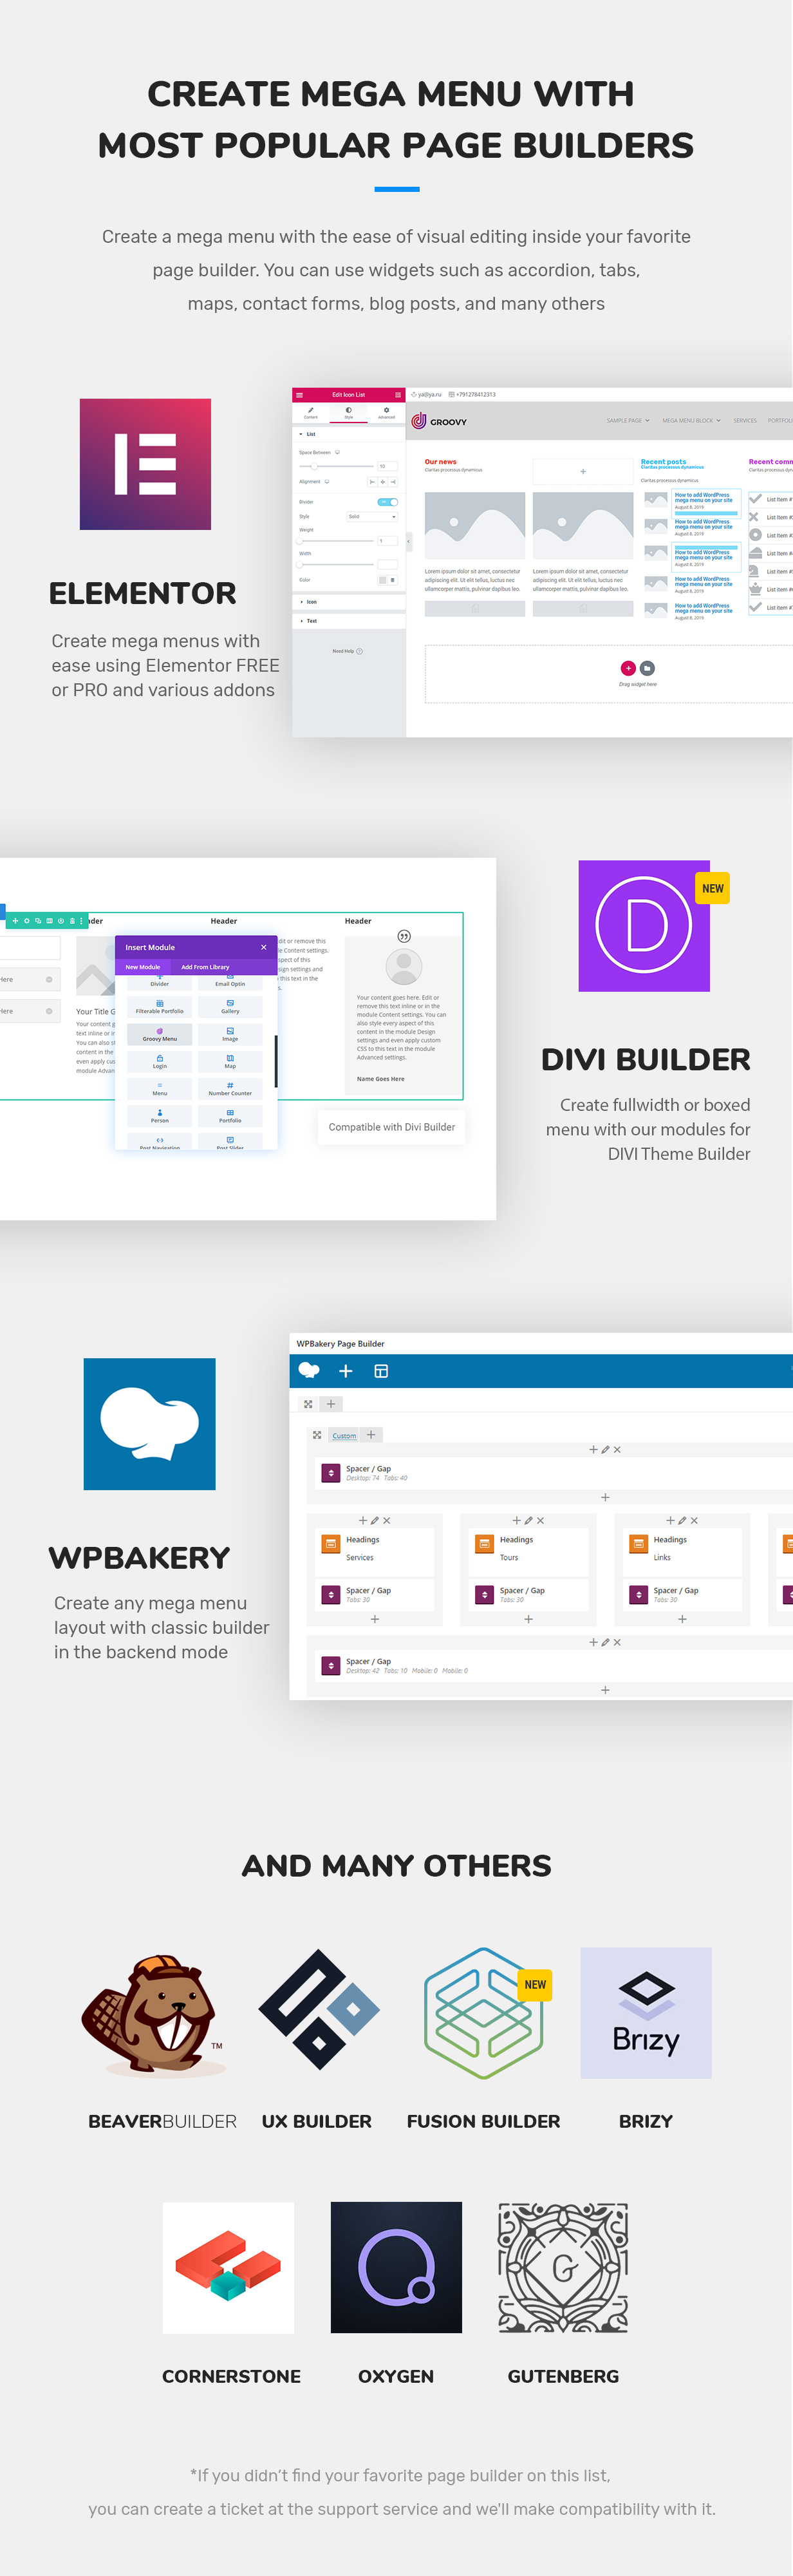 Groovy mega menu compatible page builders is a DIVI theme,  Elementor Free and PRO, WPBakery, Brizy, Oxygen, Theme Fusion, Gutenberg, Beaver Builder, UX Builder by Flatsome, Cornerstone 2021